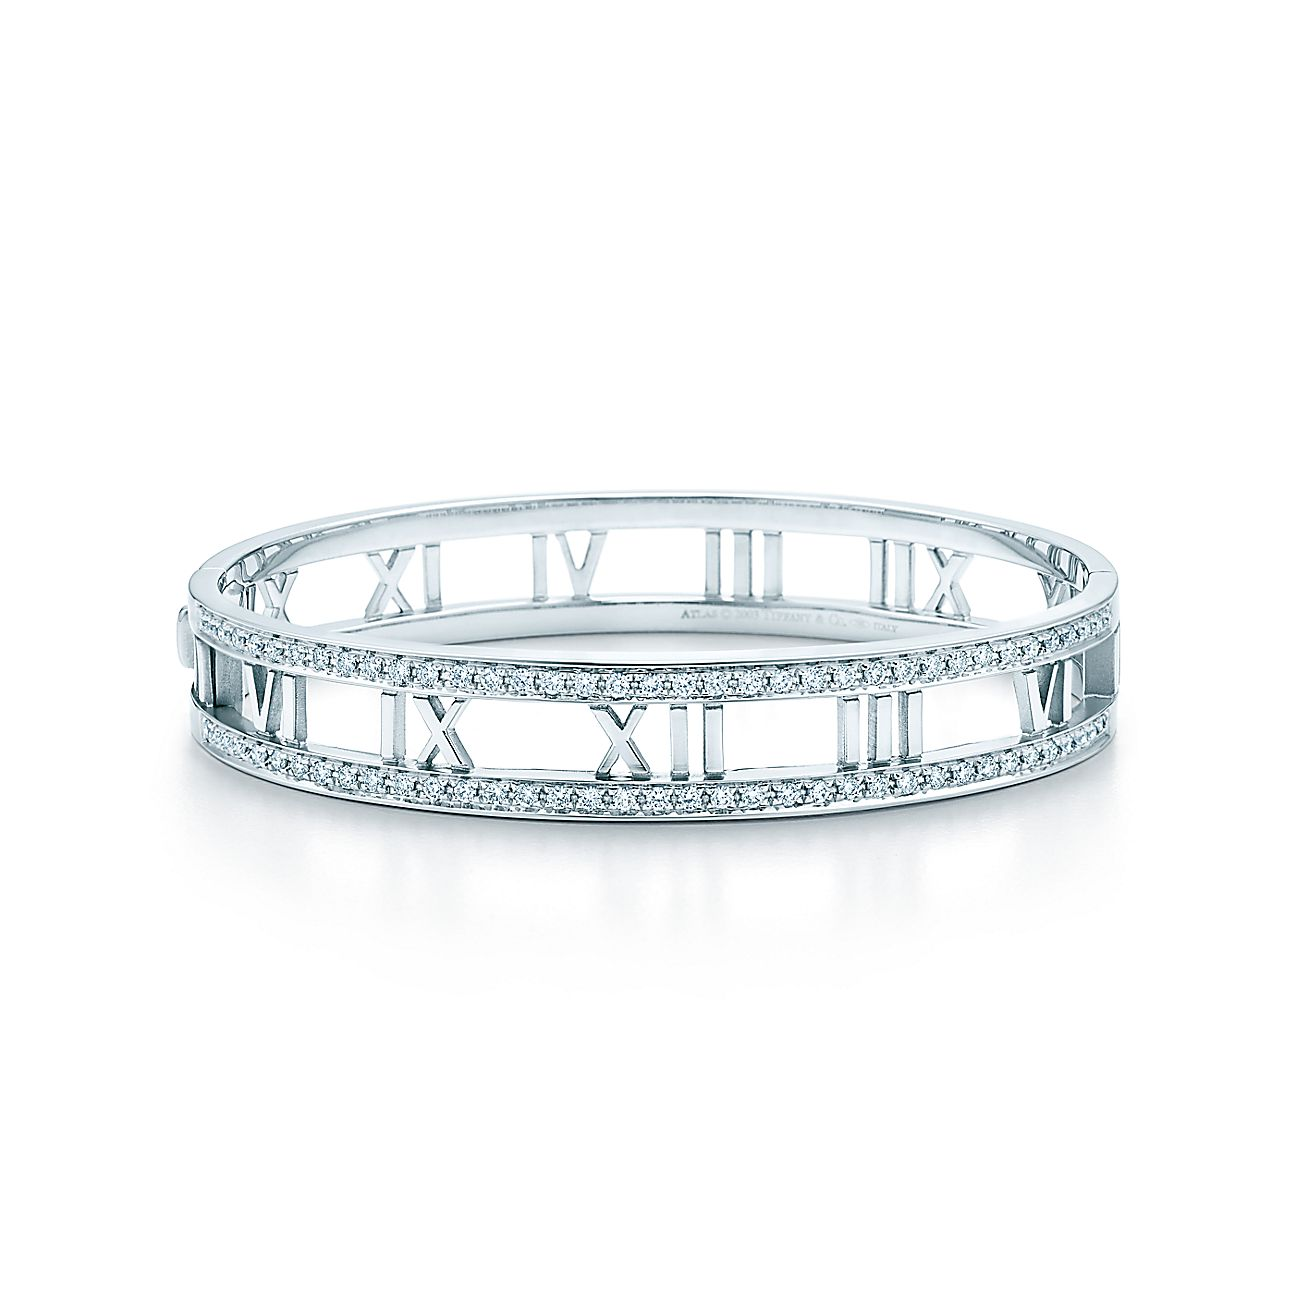 Atlas 174 Open Hinged Bangle In 18k White Gold With Diamonds